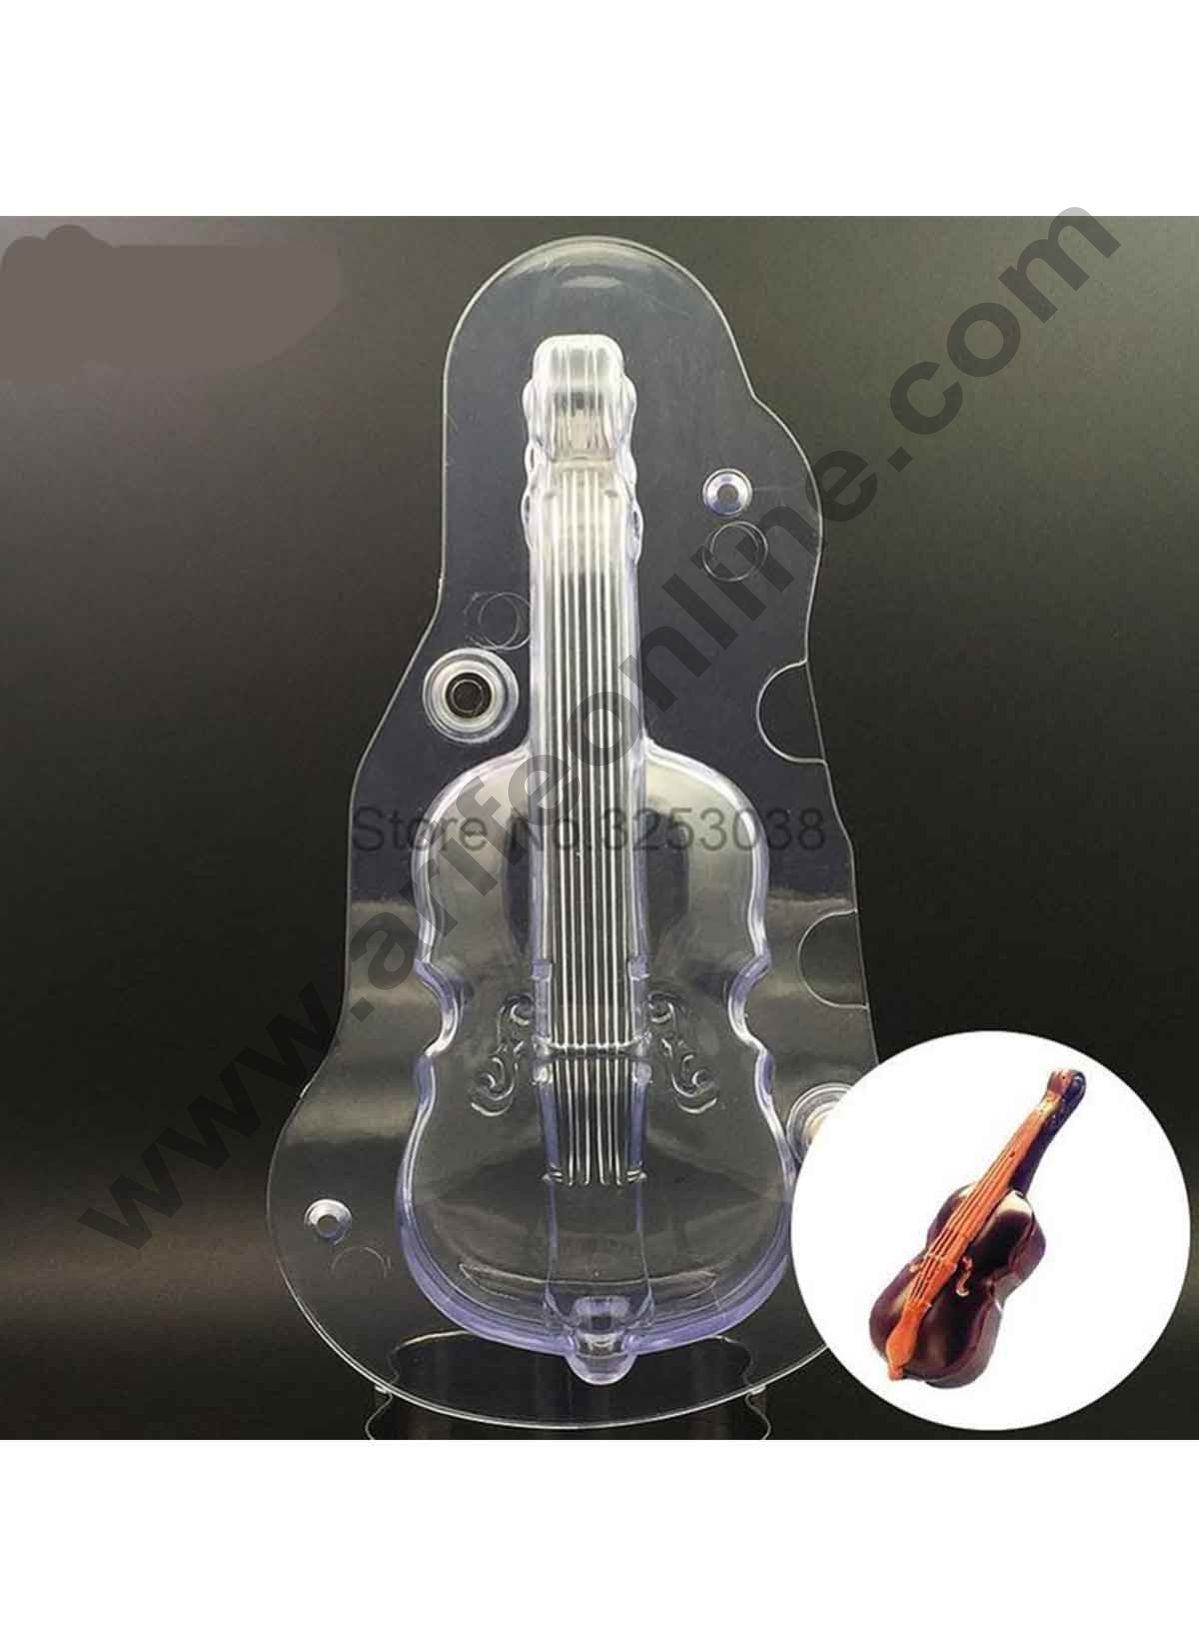 Cake Decor Polycarbonate 3D Guitar Chocolate Mold Cake Decorating Chocolate Mould Tools